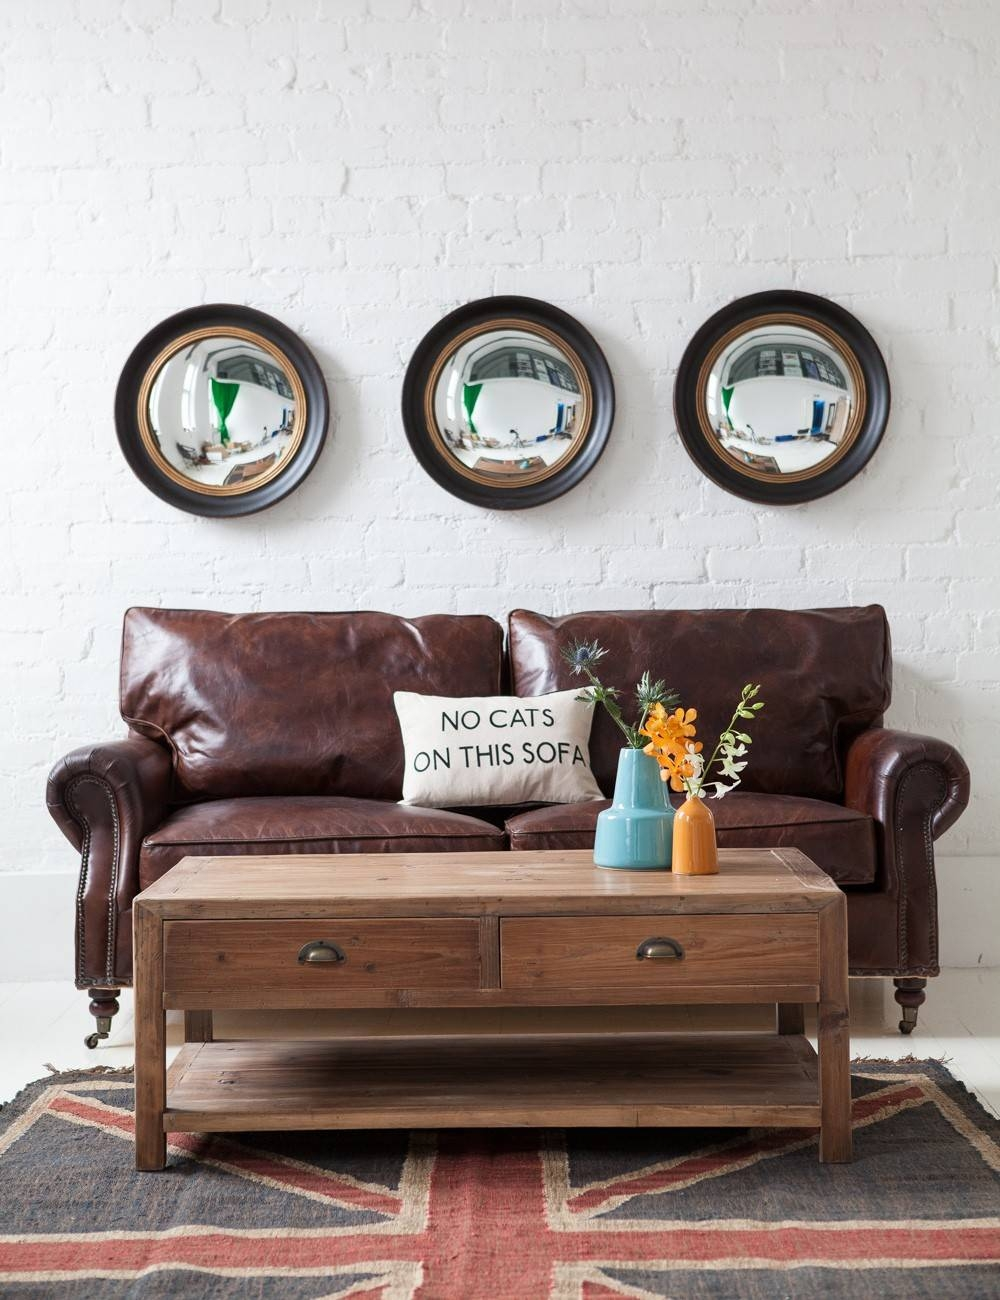 Small Convex Mirror For Creating Striking Wall Decoration | Homesfeed For Convex Decorative Mirrors (View 11 of 15)